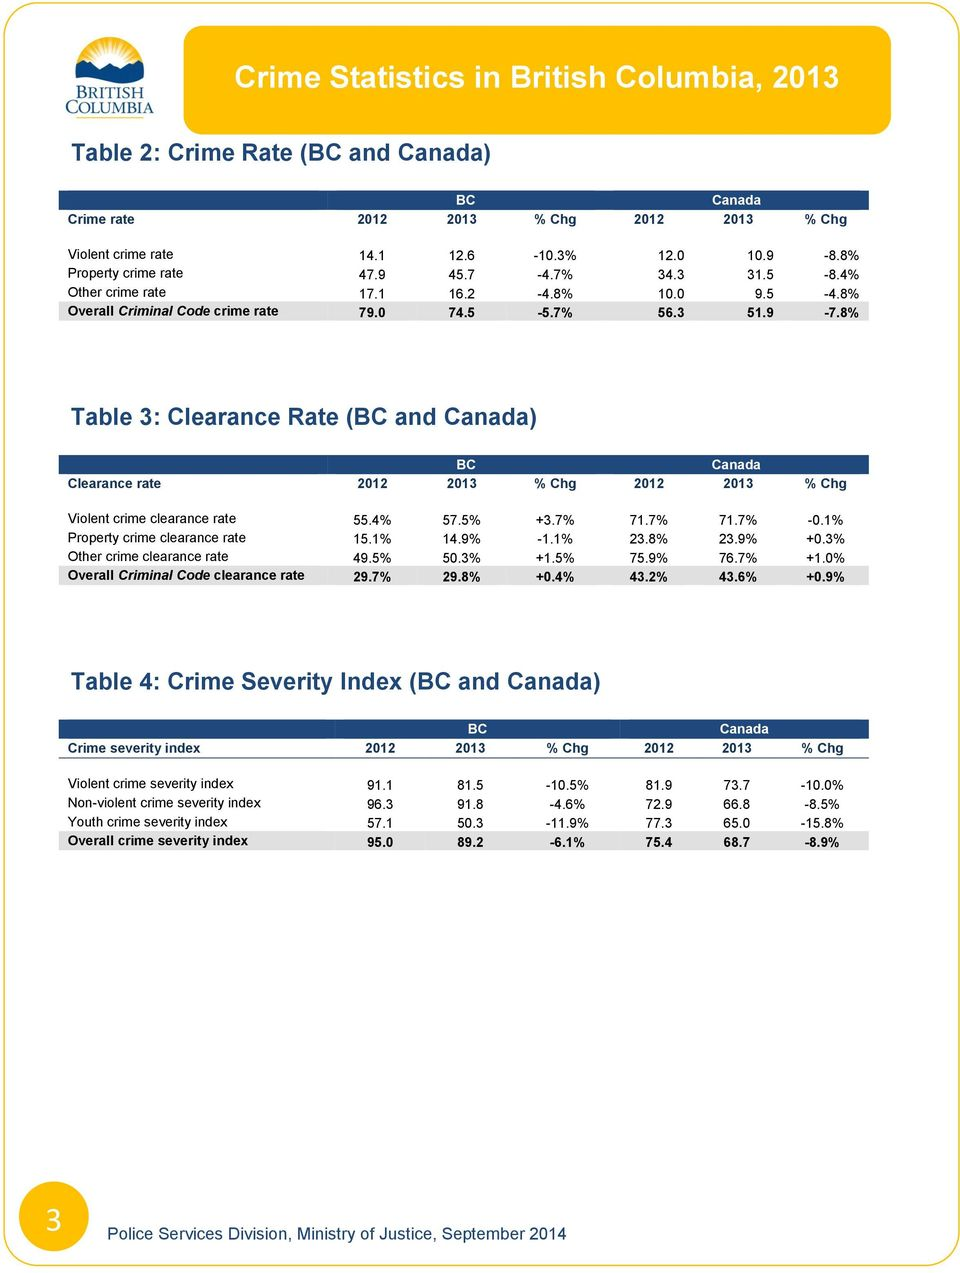 8% Table 3: Clearance Rate (BC and Canada) BC Canada Clearance rate 2012 2013 % Chg 2012 2013 % Chg Violent crime clearance rate 55.4% 57.5% +3.7% 71.7% 71.7% -0.1% Property crime clearance rate 15.